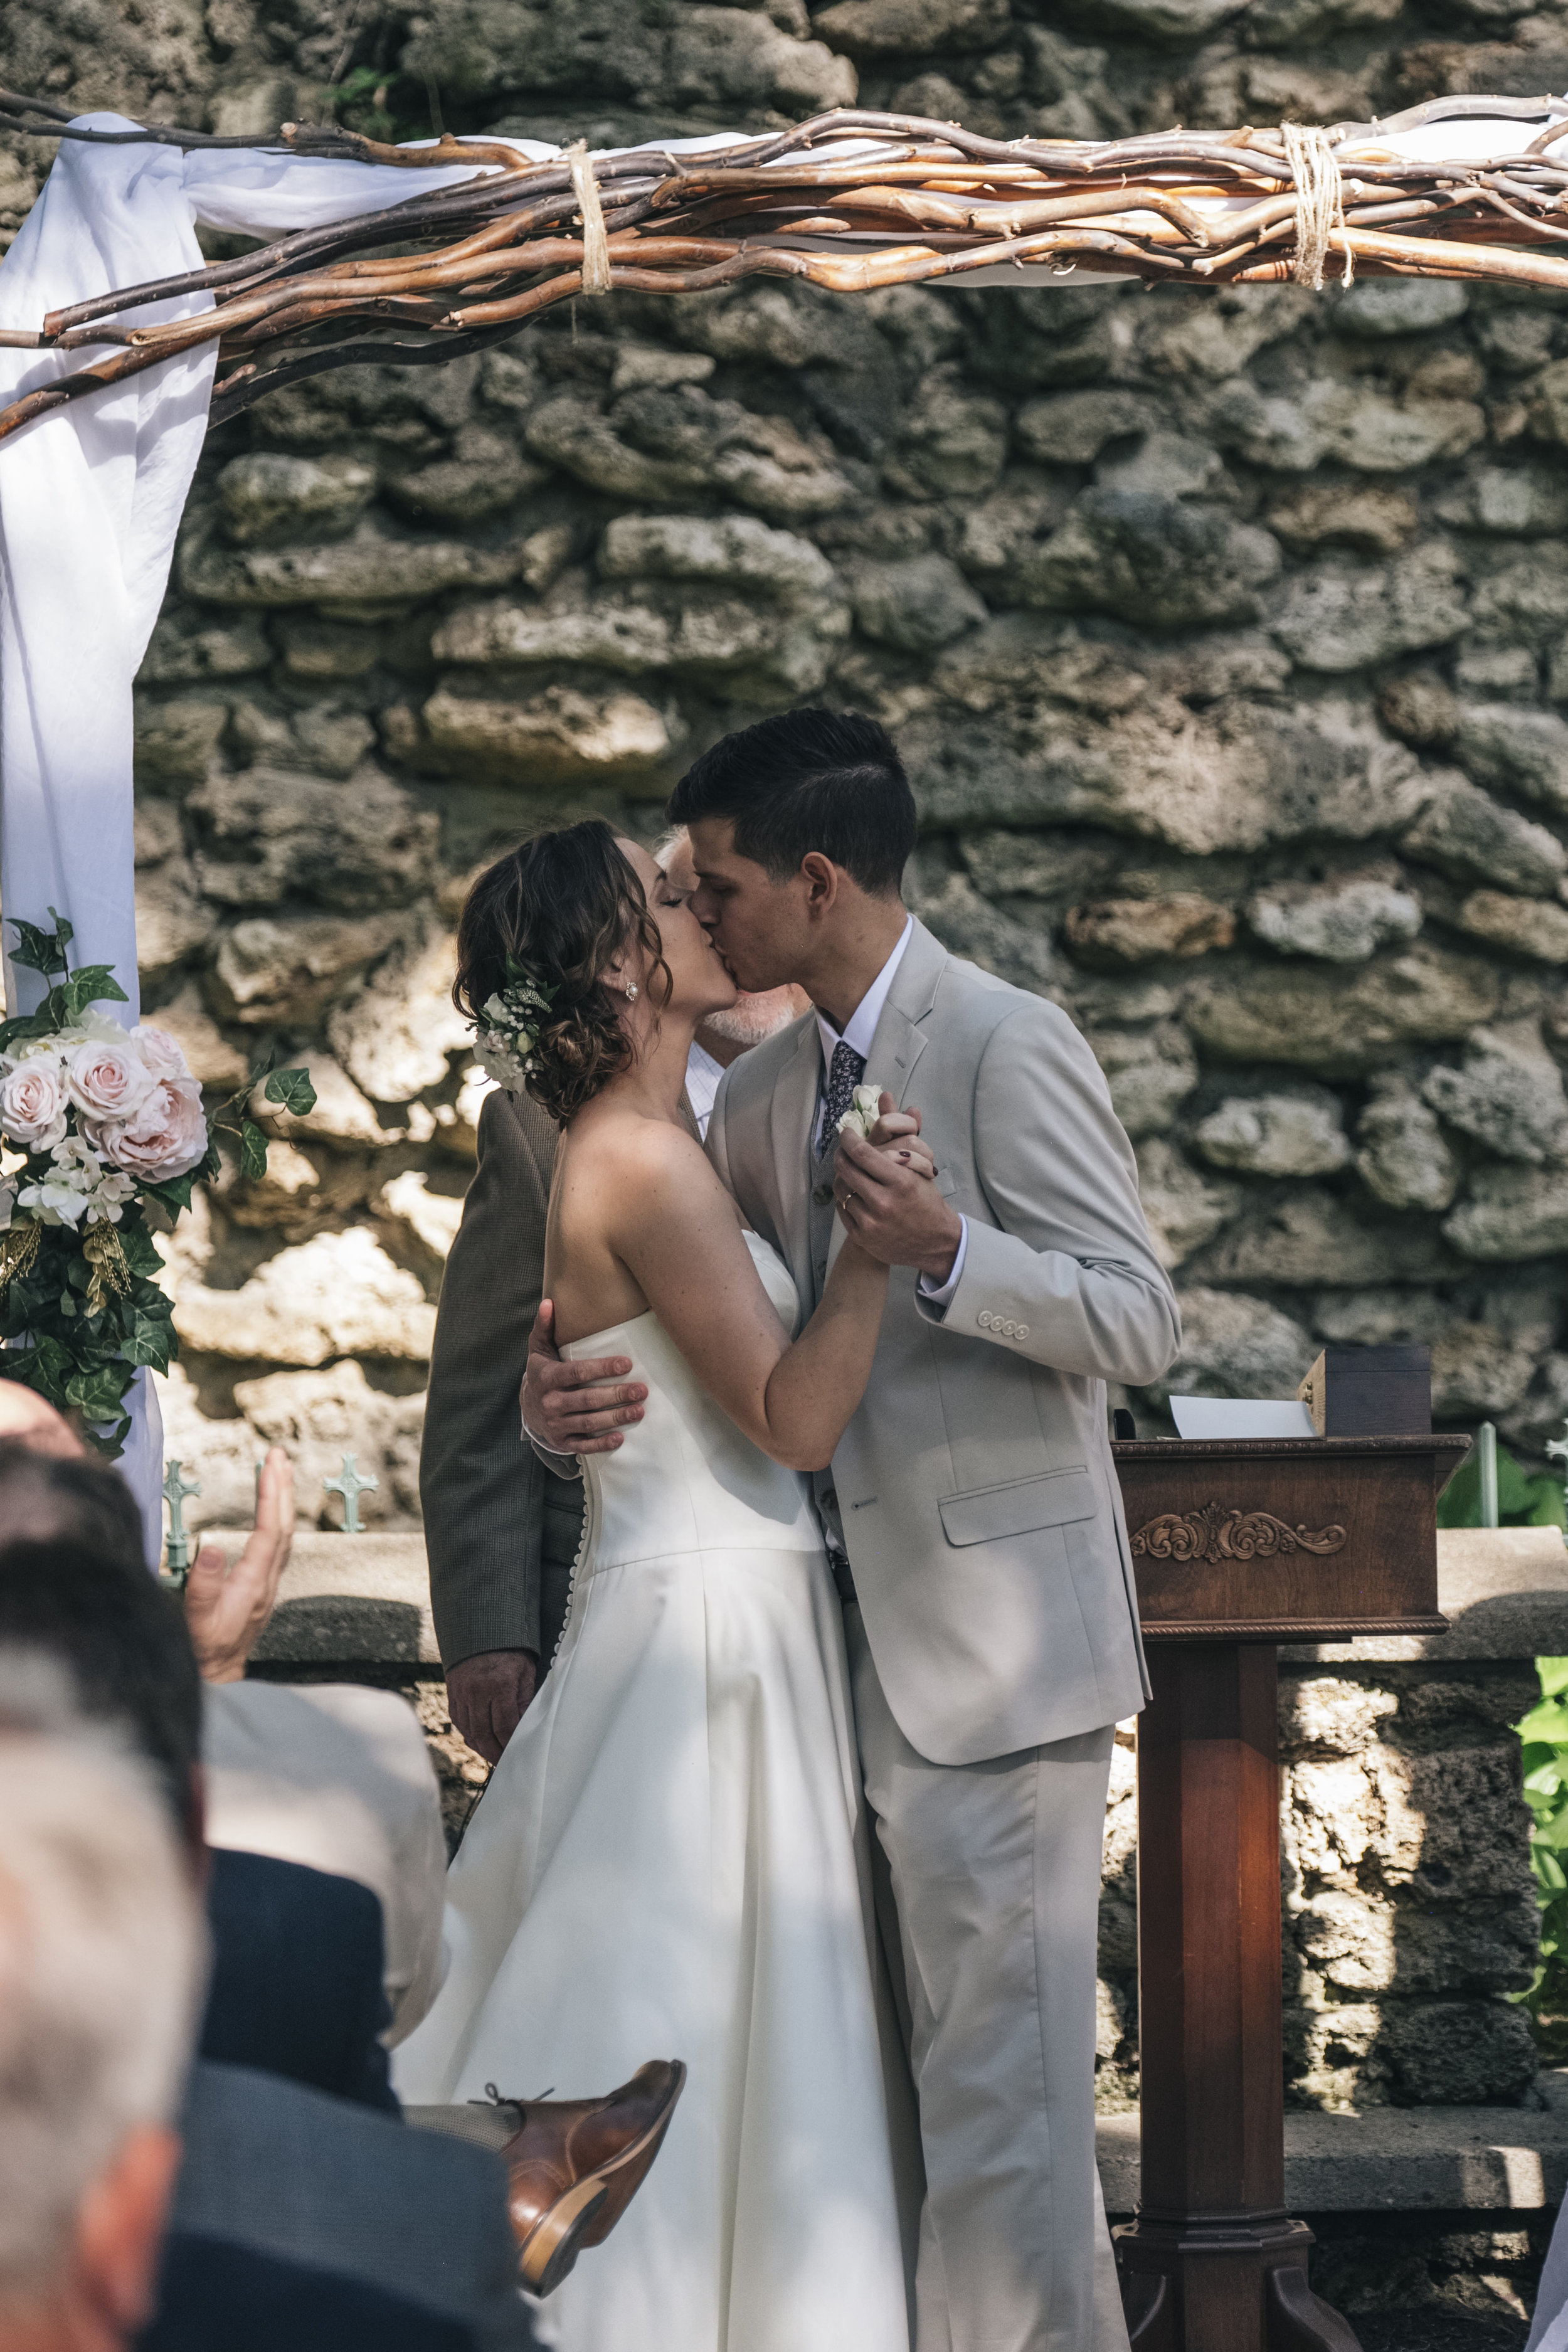 The bride and groom kiss during their wedding ceremony at Nazareth Hall.